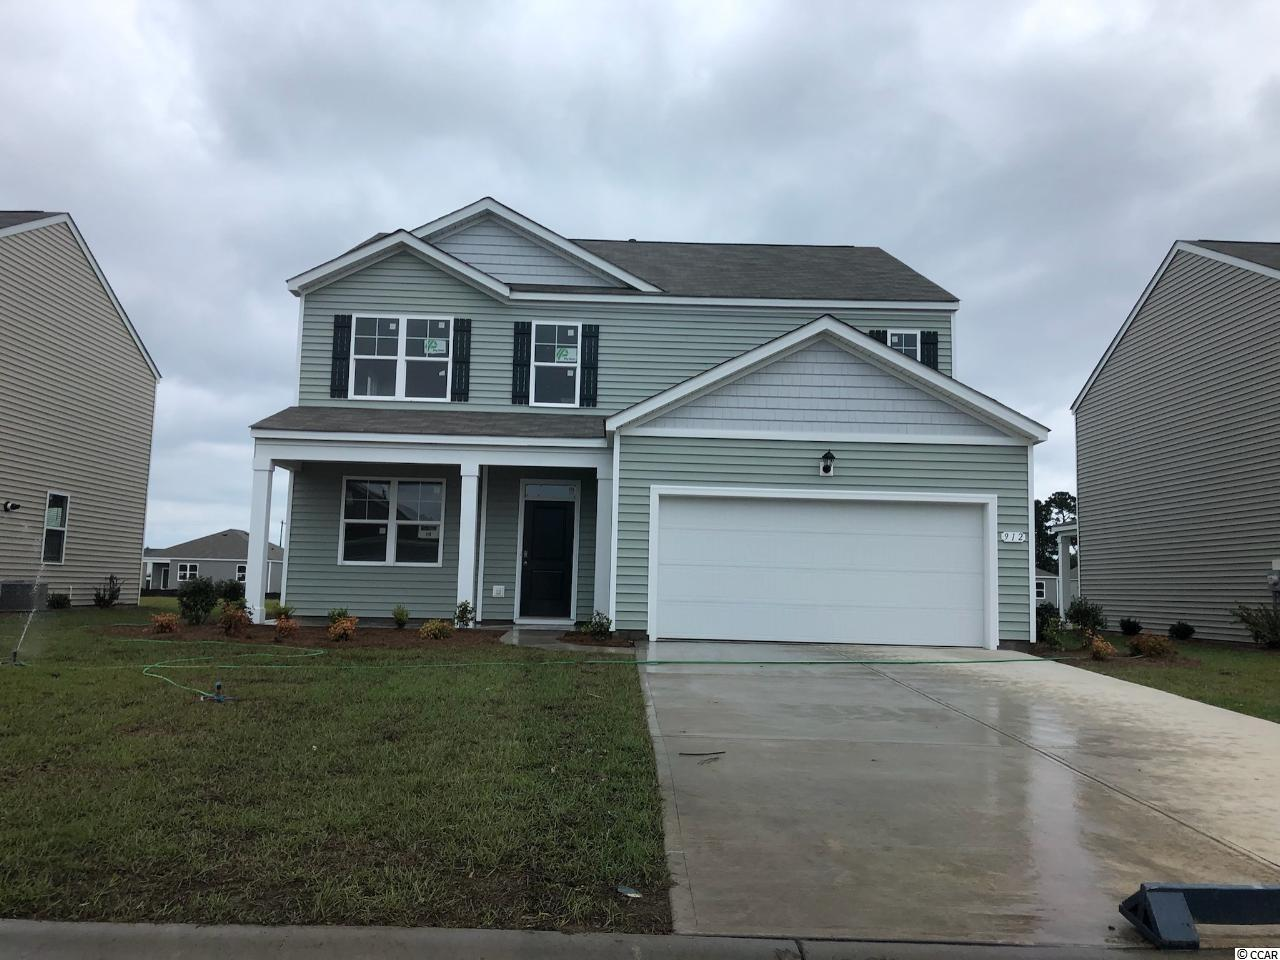 Oyster Bluff is now selling! Brand new natural gas community just minutes away from shopping, dining, and the beach. The Elle floor plan offers plenty of space with room to grow. Featuring a first floor primary bedroom suite with generous bath, walk-in closet, and linen closet. The kitchen boasts a large island with breakfast bar and opens to the casual dining area and spacious family room. Granite countertops, off-white painted cabinetry, stainless Whirlpool appliances, and beautiful laminate wood flooring throughout the main living areas all included! There is also a study with French doors on the main level for a perfect home office space while sliding glass doors off the dining space lead to the rear covered porch with pond views for a seamless transition from indoor to outdoor living. The upstairs offers four large bedrooms, two full bathrooms, plus an expansive secondary living area. Tankless gas water heater, two-car garage with garage door opener, and our QuickTie framing system also included. It gets better- this is America's Smart Home! Ask an agent today about our industry leading smart home technology package that is included in each of our new homes.  *Photos are of a similar Elle home. (Home and community information, including pricing, included features, terms, availability and amenities, are subject to change prior to sale at any time without notice or obligation. Square footages are approximate. Pictures, photographs, colors, features, and sizes are for illustration purposes only and will vary from the homes as built. Equal housing opportunity builder.)